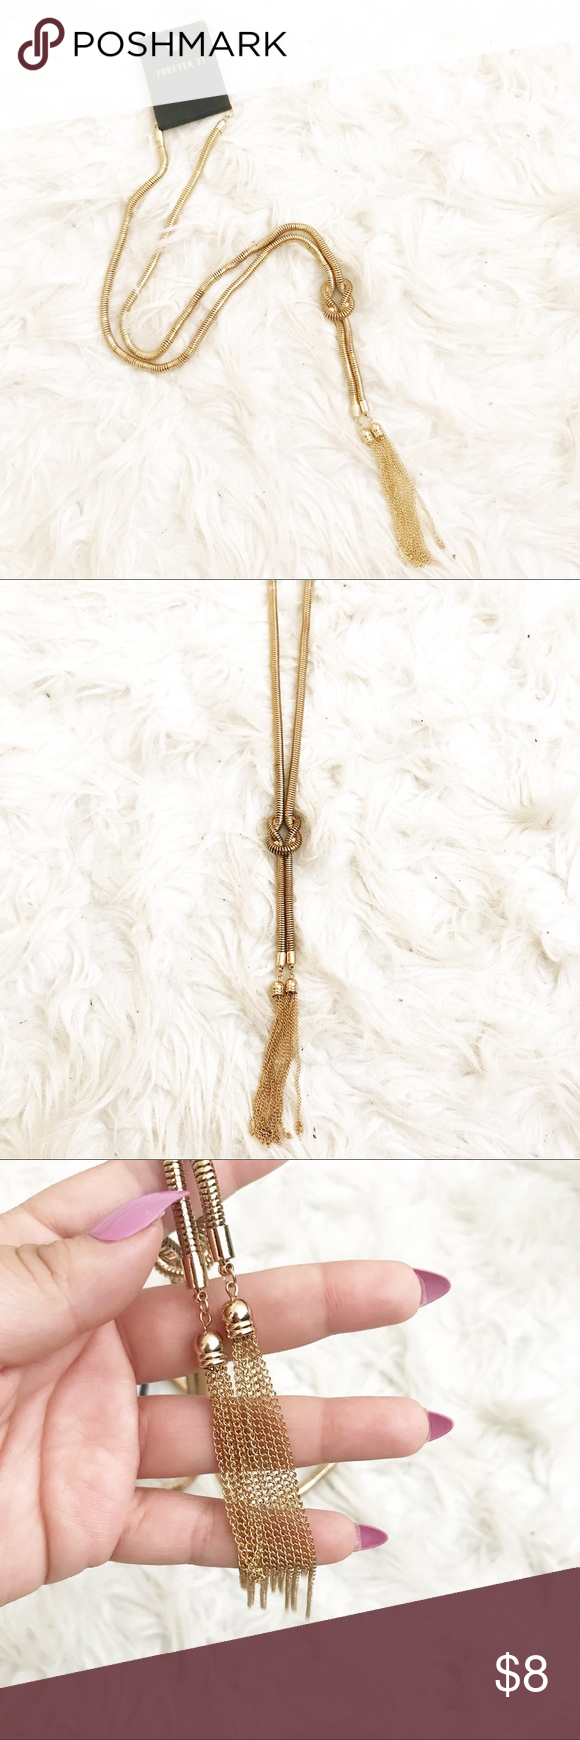 Tassel Necklace Long tassel necklace with knot Brand new